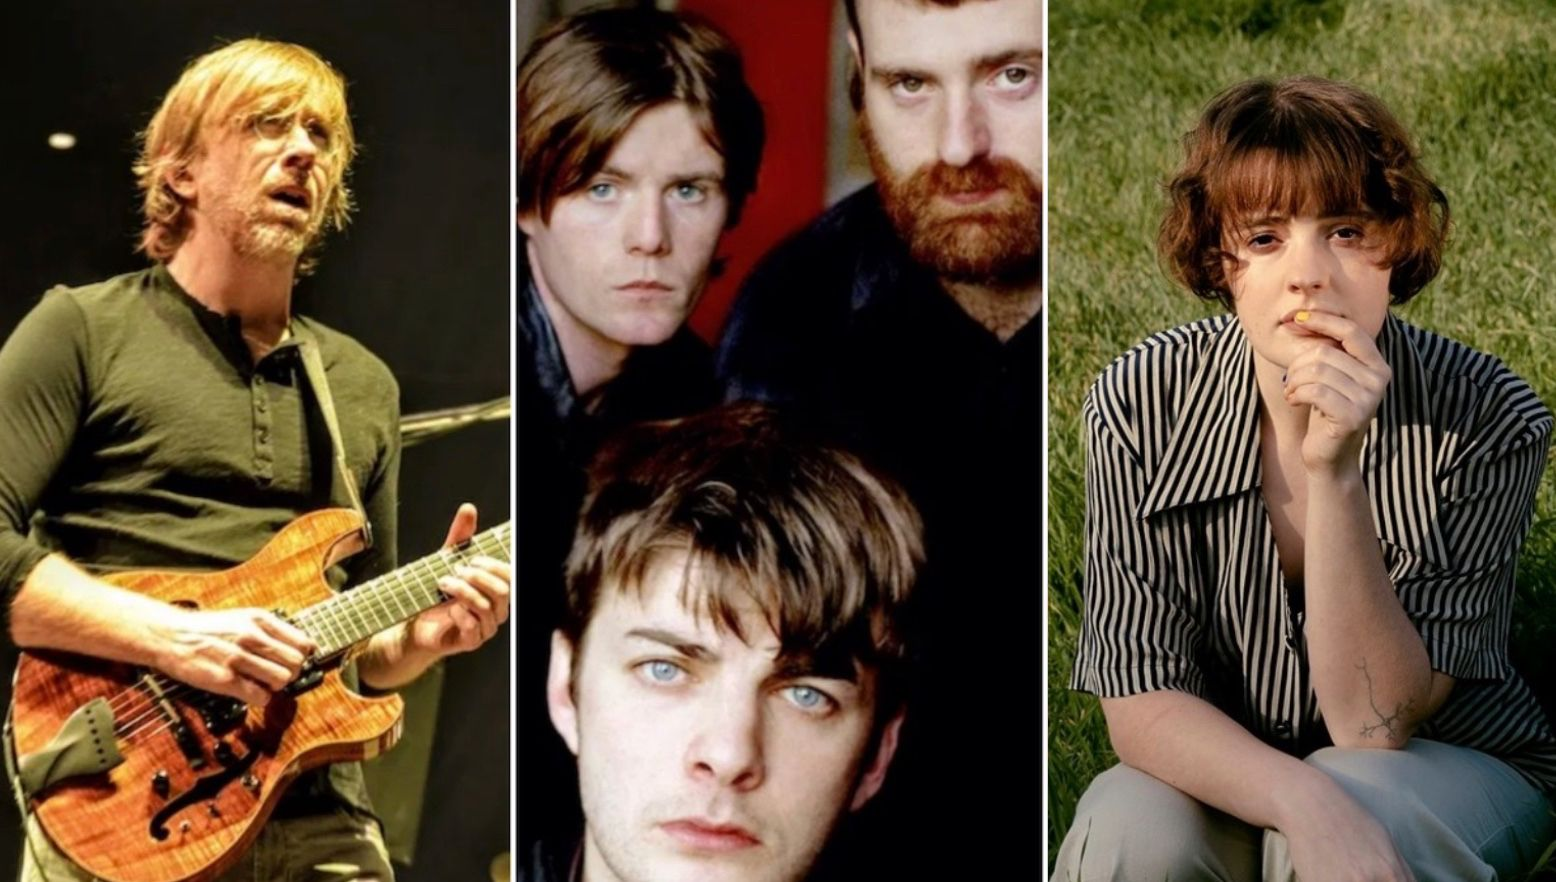 New Music Friday: Trey Anastasio, Madeline Kenney, Fontaines D.C …. 7 albums à diffuser